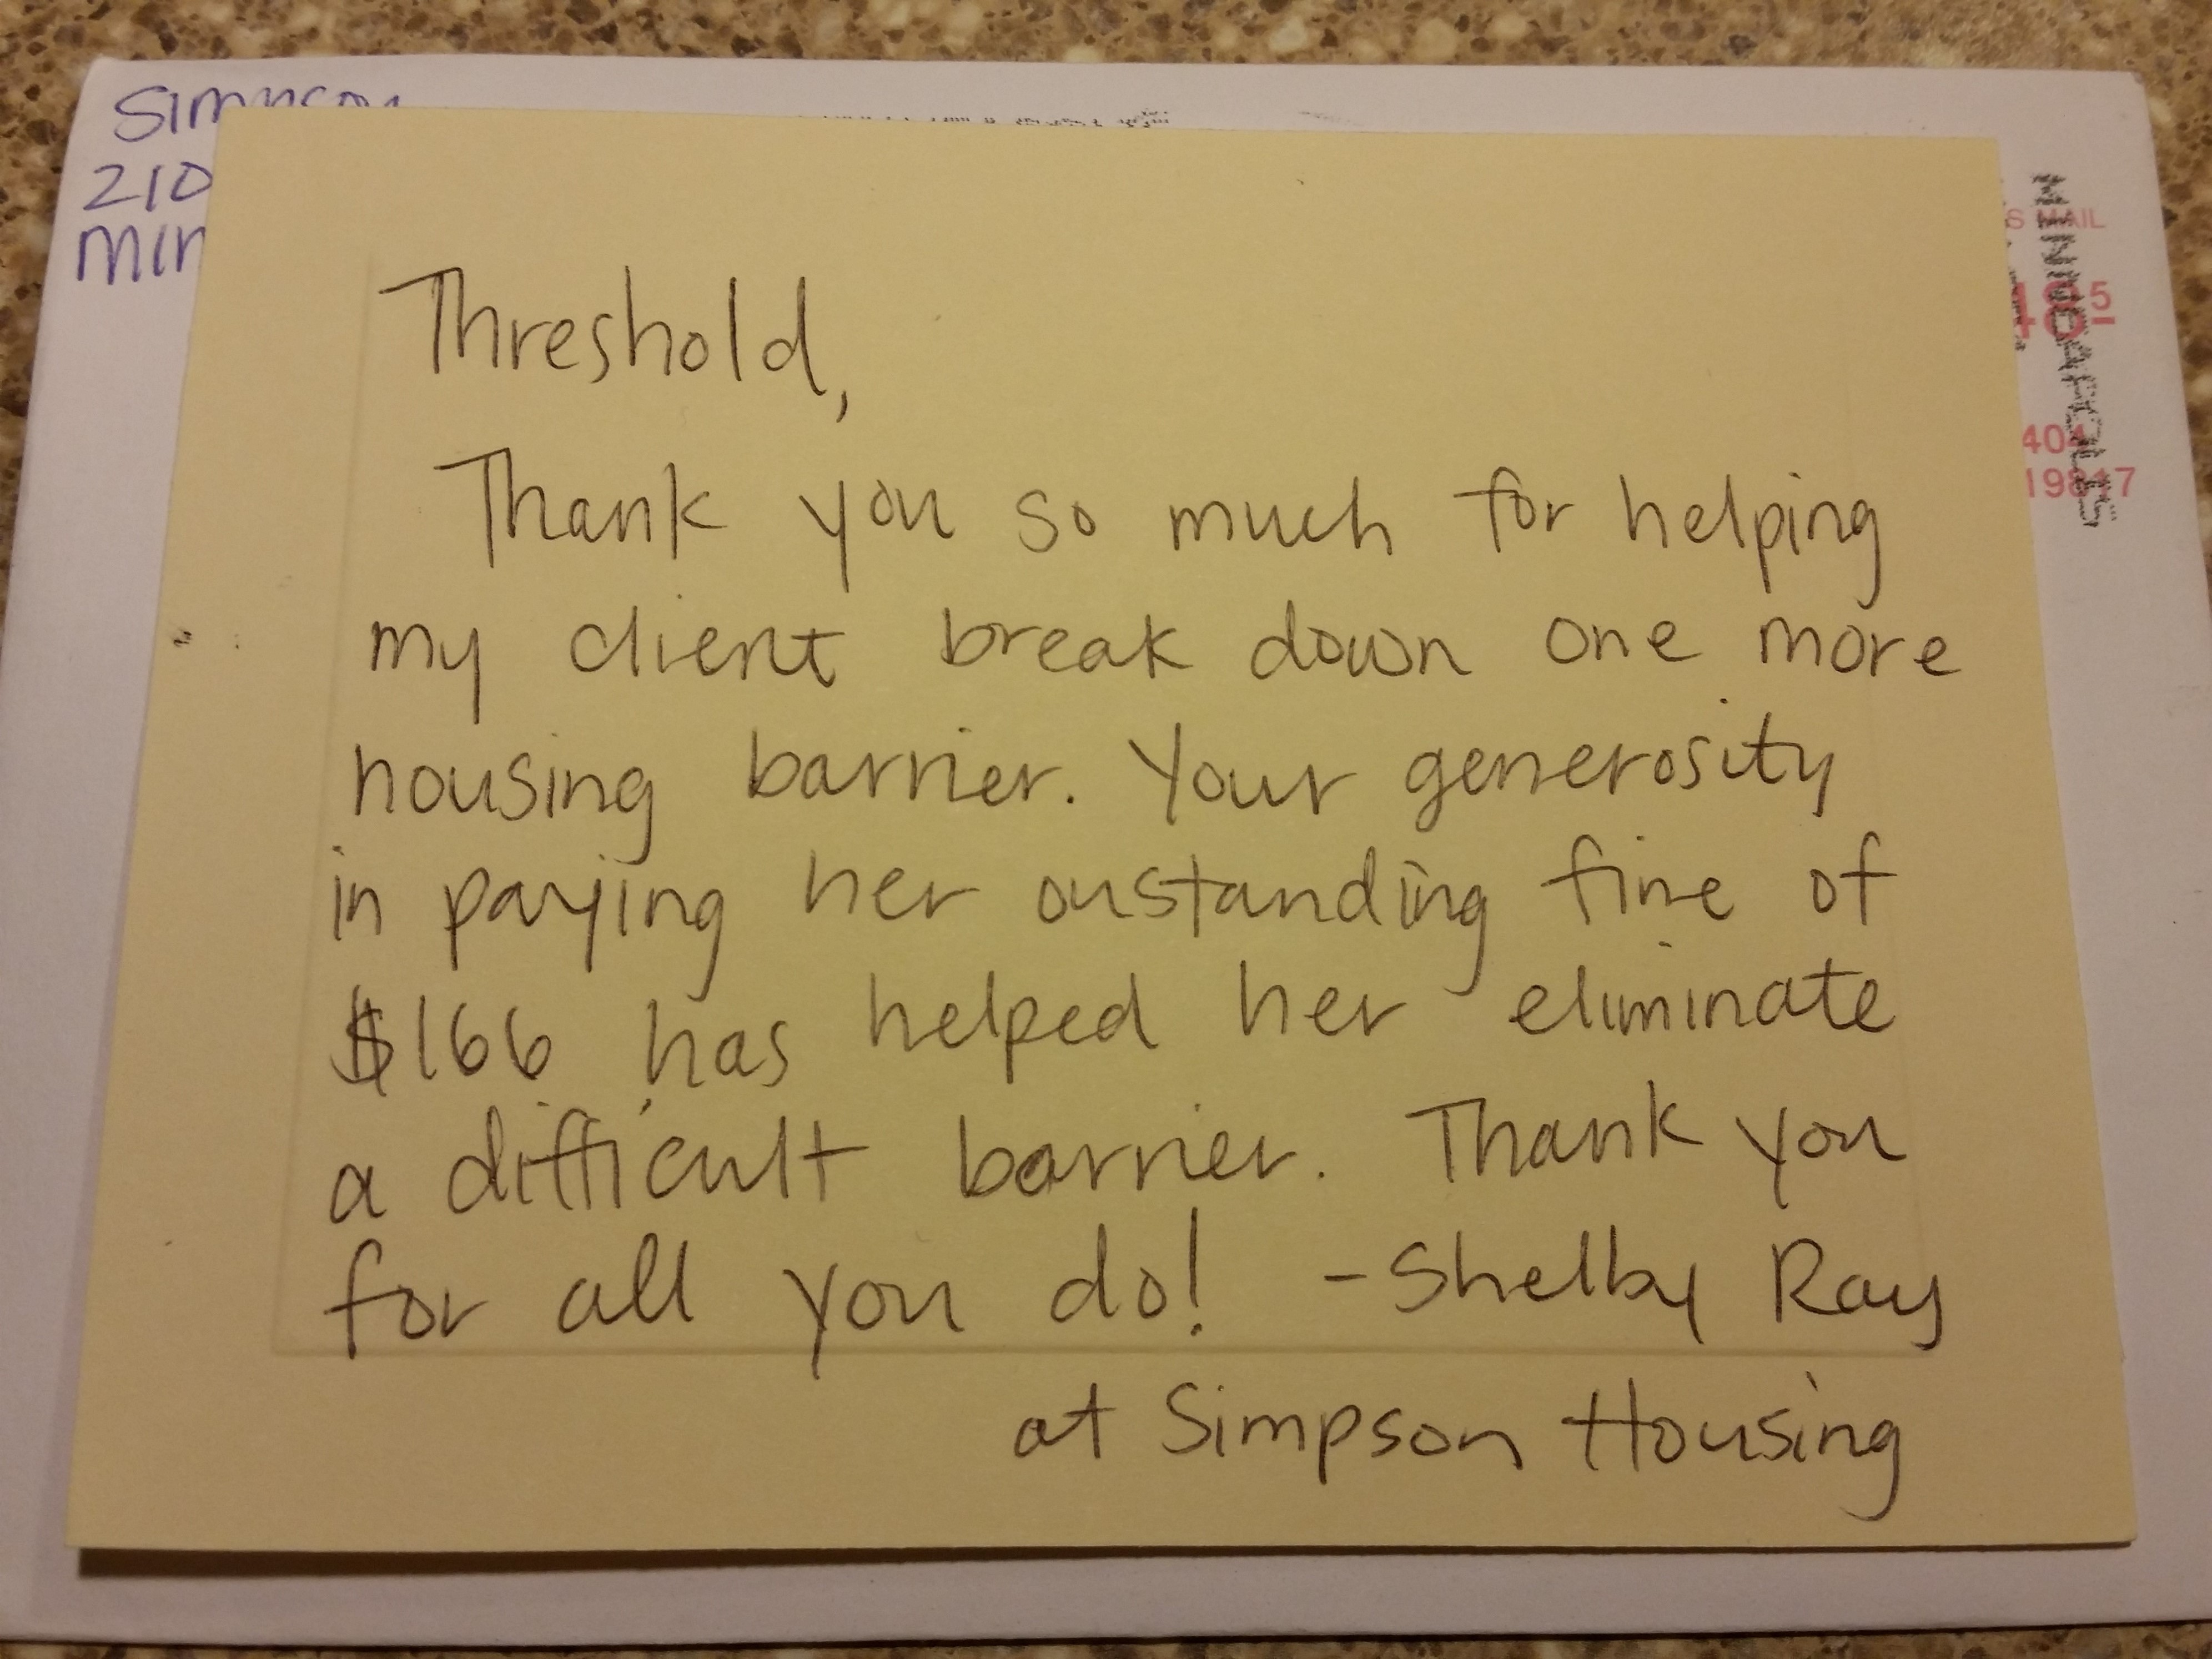 TY note from Simpson Housing 2015-11